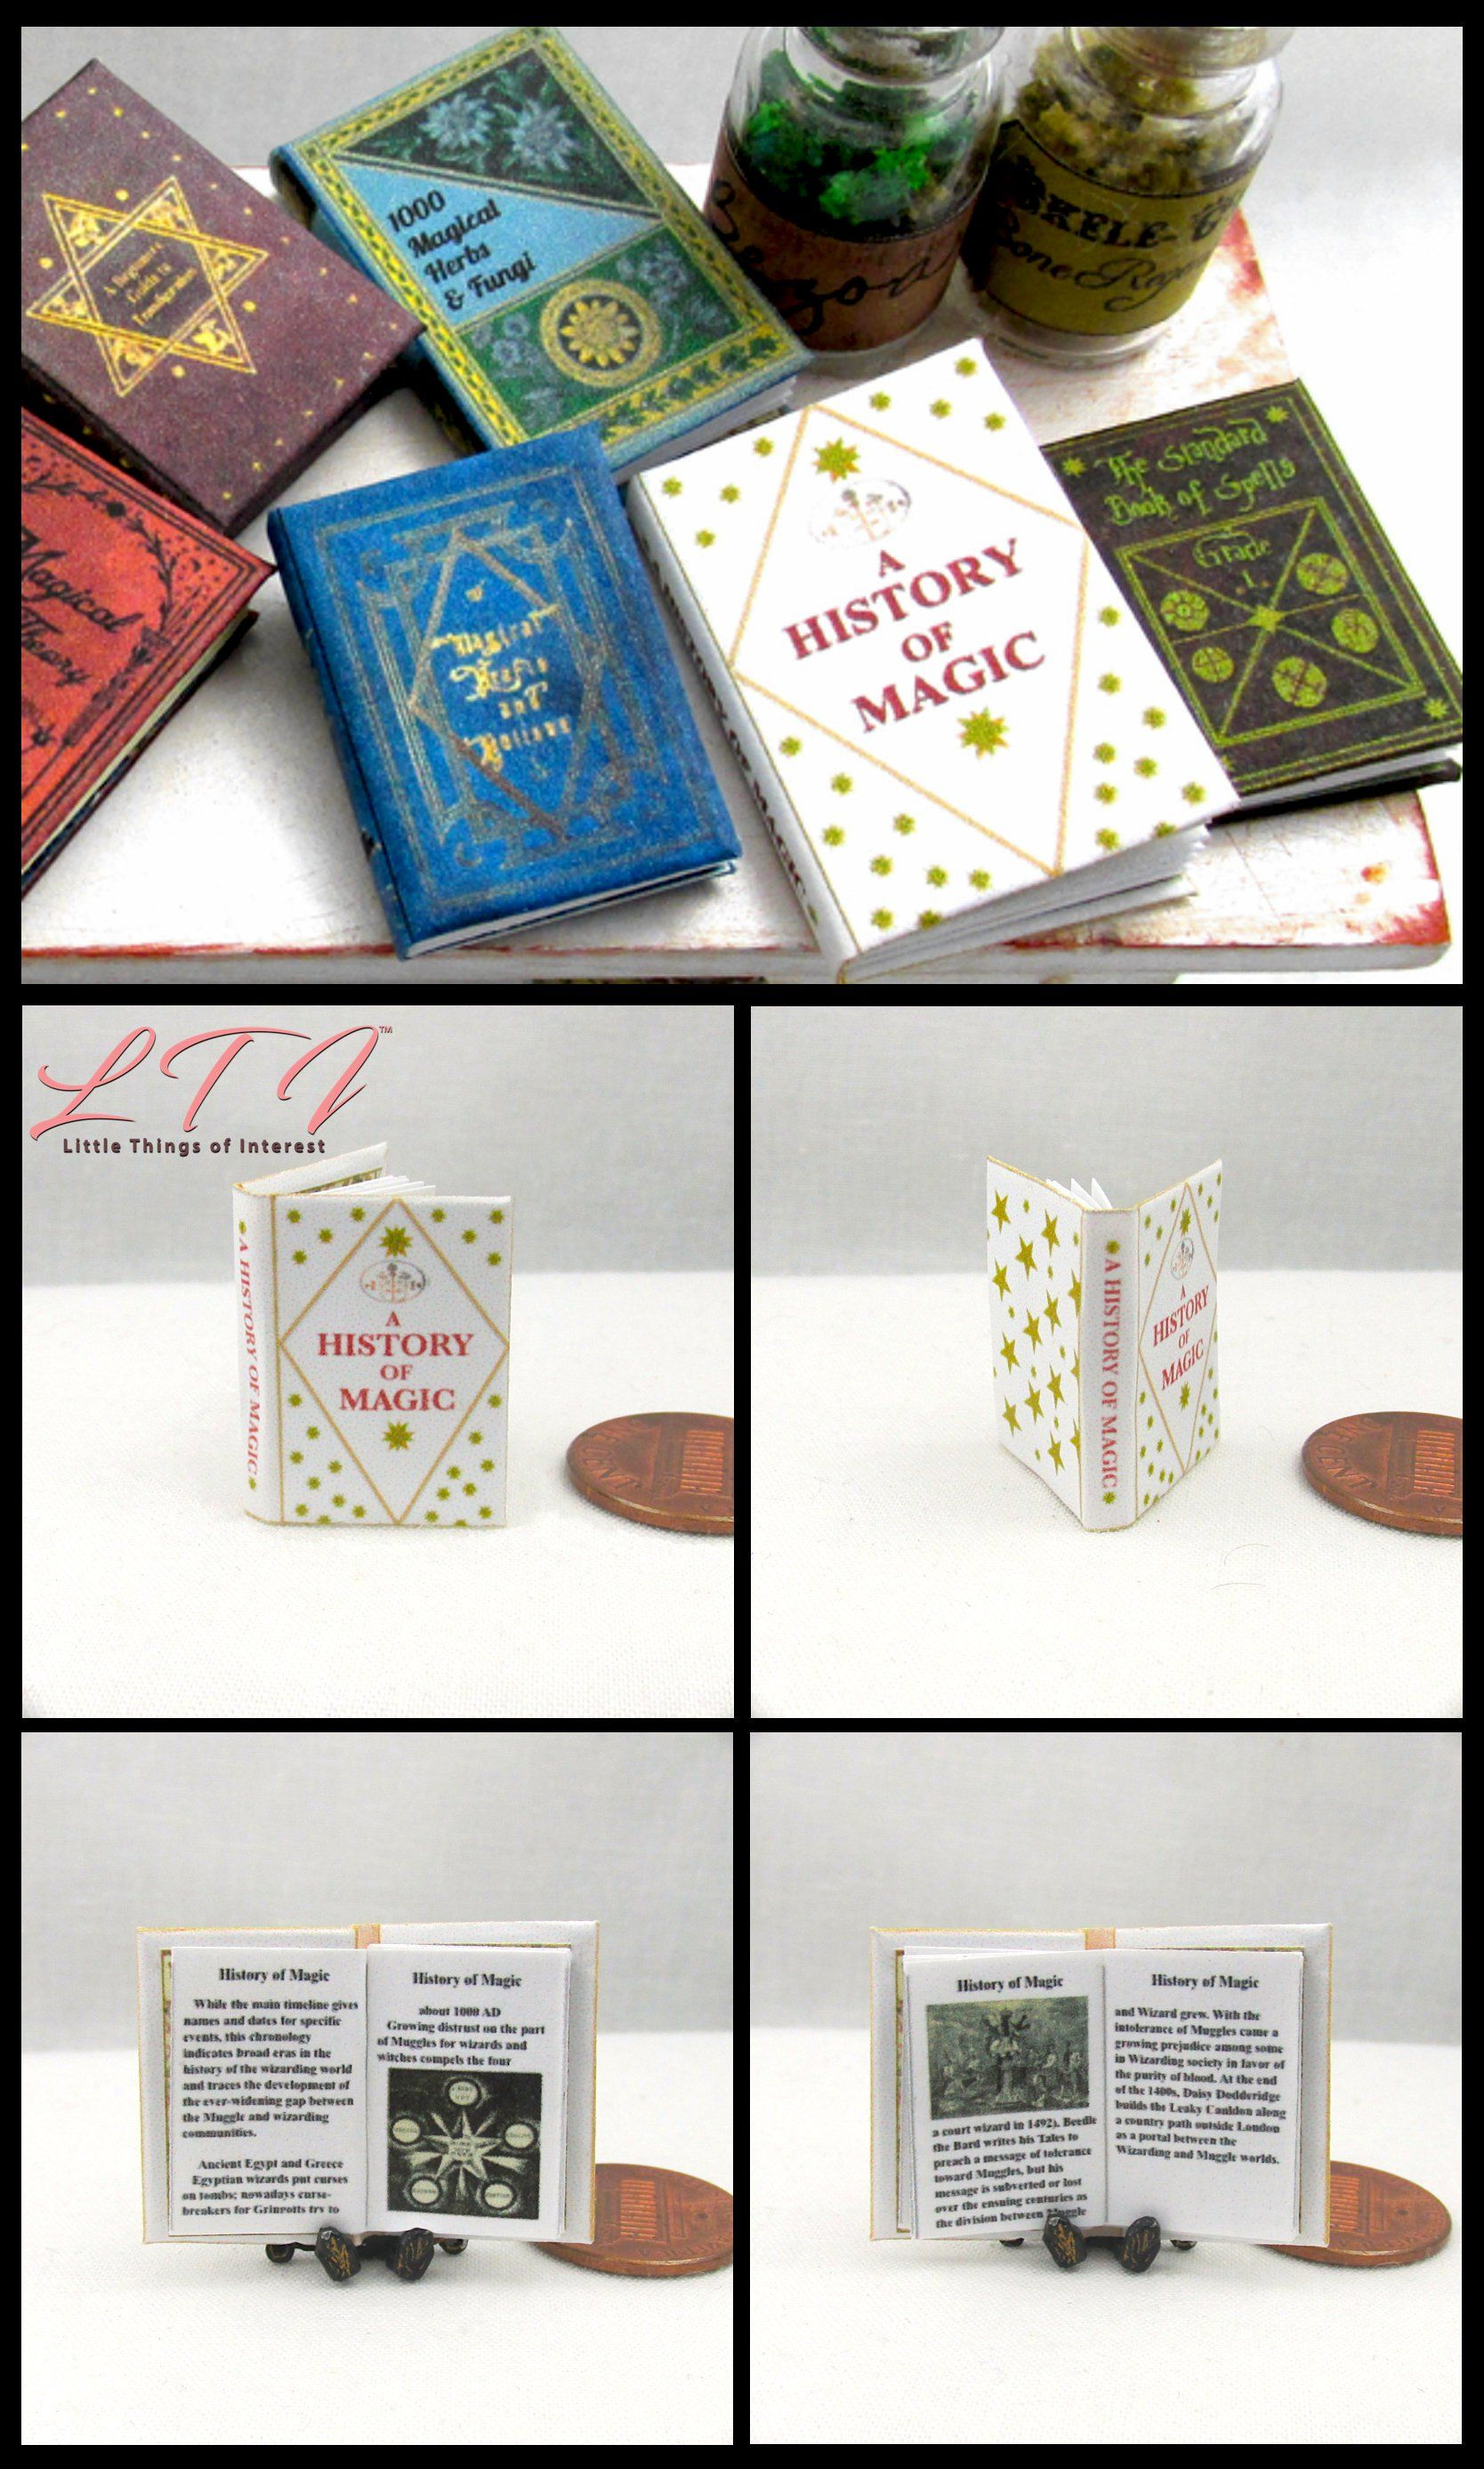 BOOK OF DRAGONS Illustrated Miniature Book Dollhouse 1:12 Scale Potter Magic